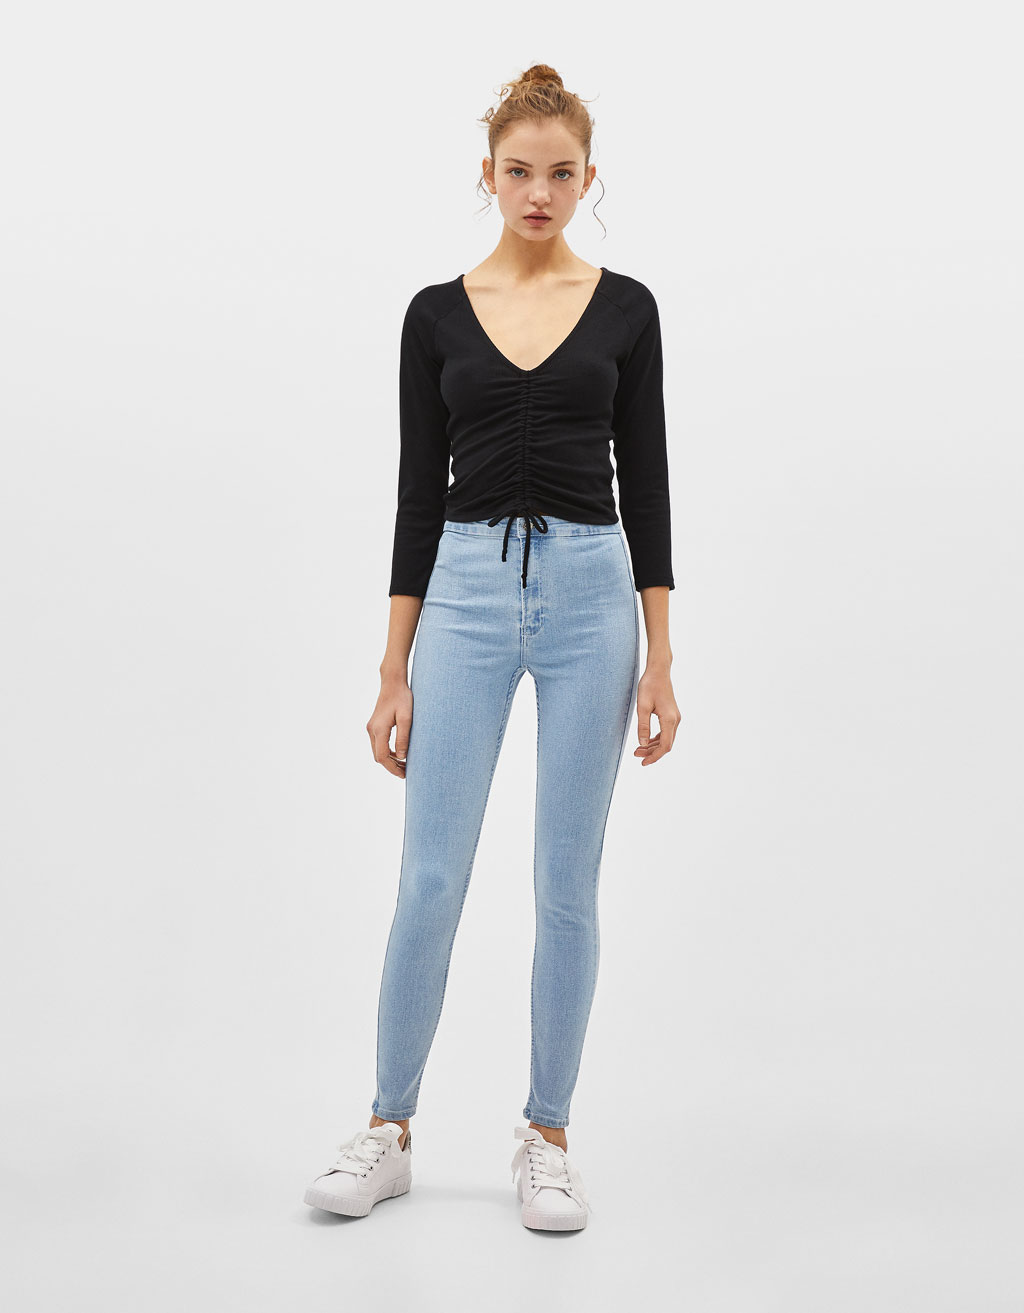 jeggings (17)